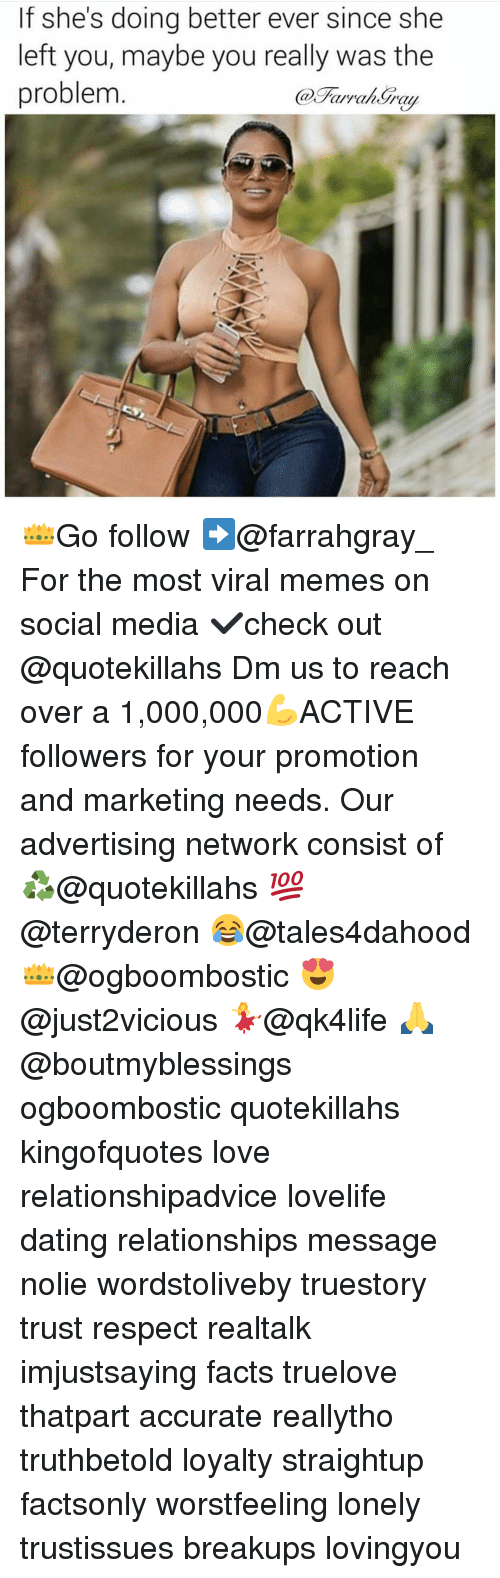 Memes, 🤖, and Media: If she's doing better ever since she  left you, maybe you really was the  problem 👑Go follow ➡@farrahgray_ For the most viral memes on social media ✔check out @quotekillahs Dm us to reach over a 1,000,000💪ACTIVE followers for your promotion and marketing needs. Our advertising network consist of ♻@quotekillahs 💯@terryderon 😂@tales4dahood 👑@ogboombostic 😍@just2vicious 💃@qk4life 🙏@boutmyblessings ogboombostic quotekillahs kingofquotes love relationshipadvice lovelife dating relationships message nolie wordstoliveby truestory trust respect realtalk imjustsaying facts truelove thatpart accurate reallytho truthbetold loyalty straightup factsonly worstfeeling lonely trustissues breakups lovingyou